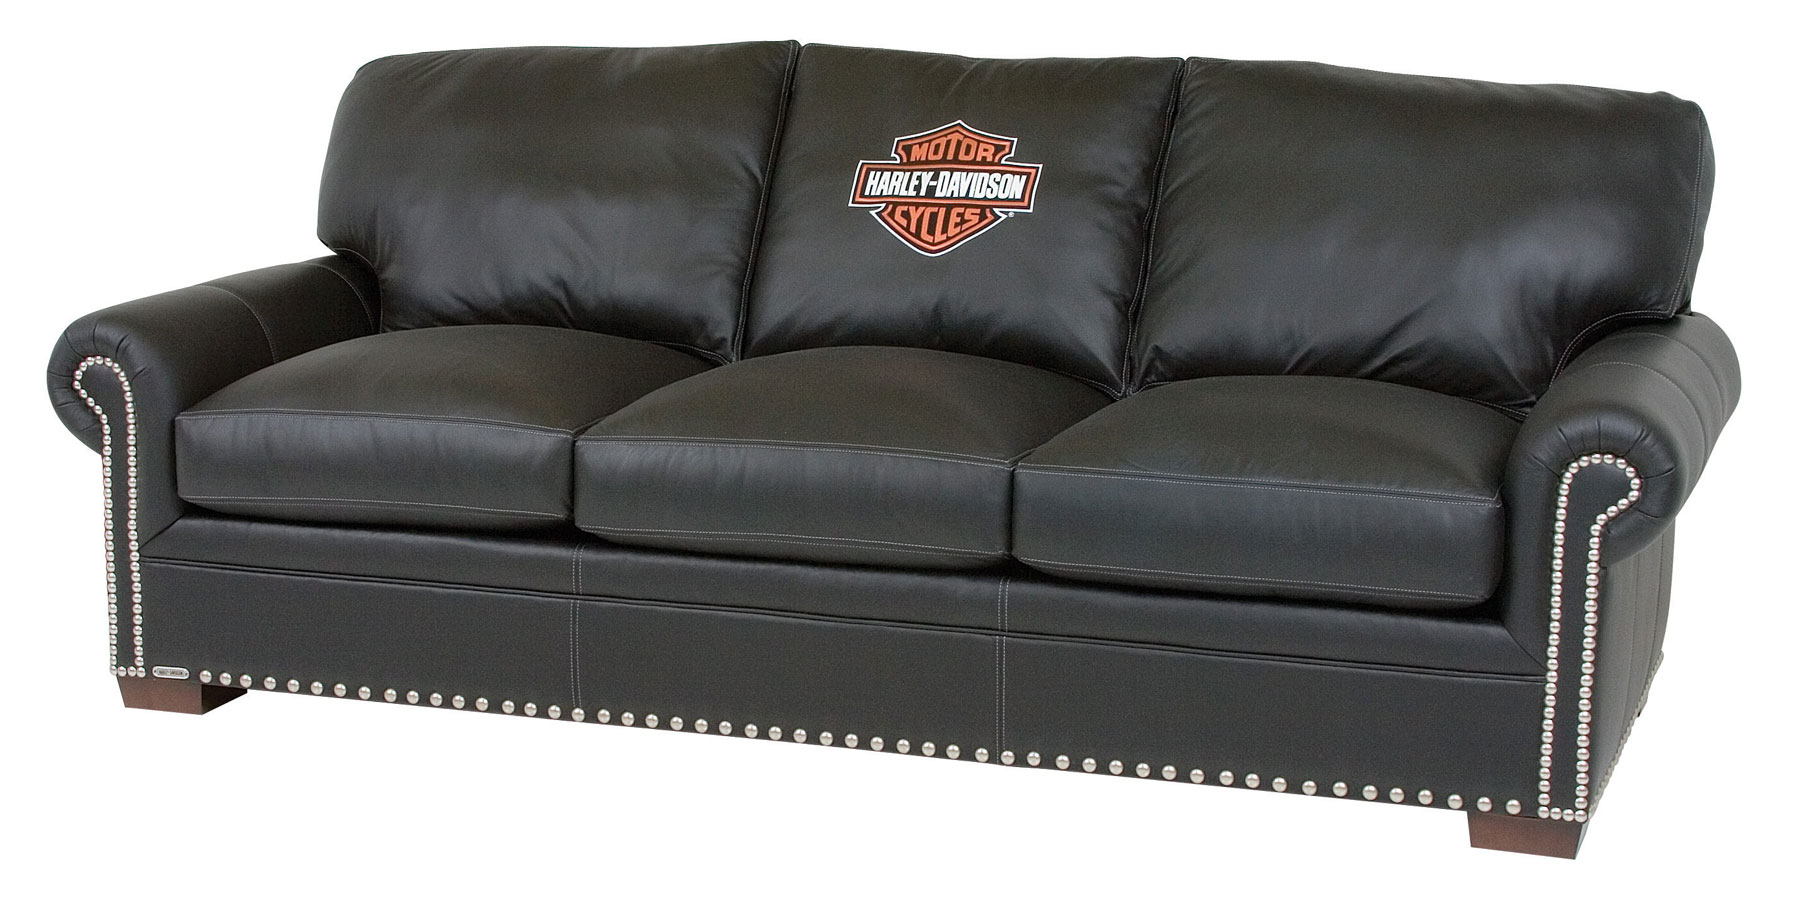 Harley Davidson Officially Licensed Black Leather Furniture Collection